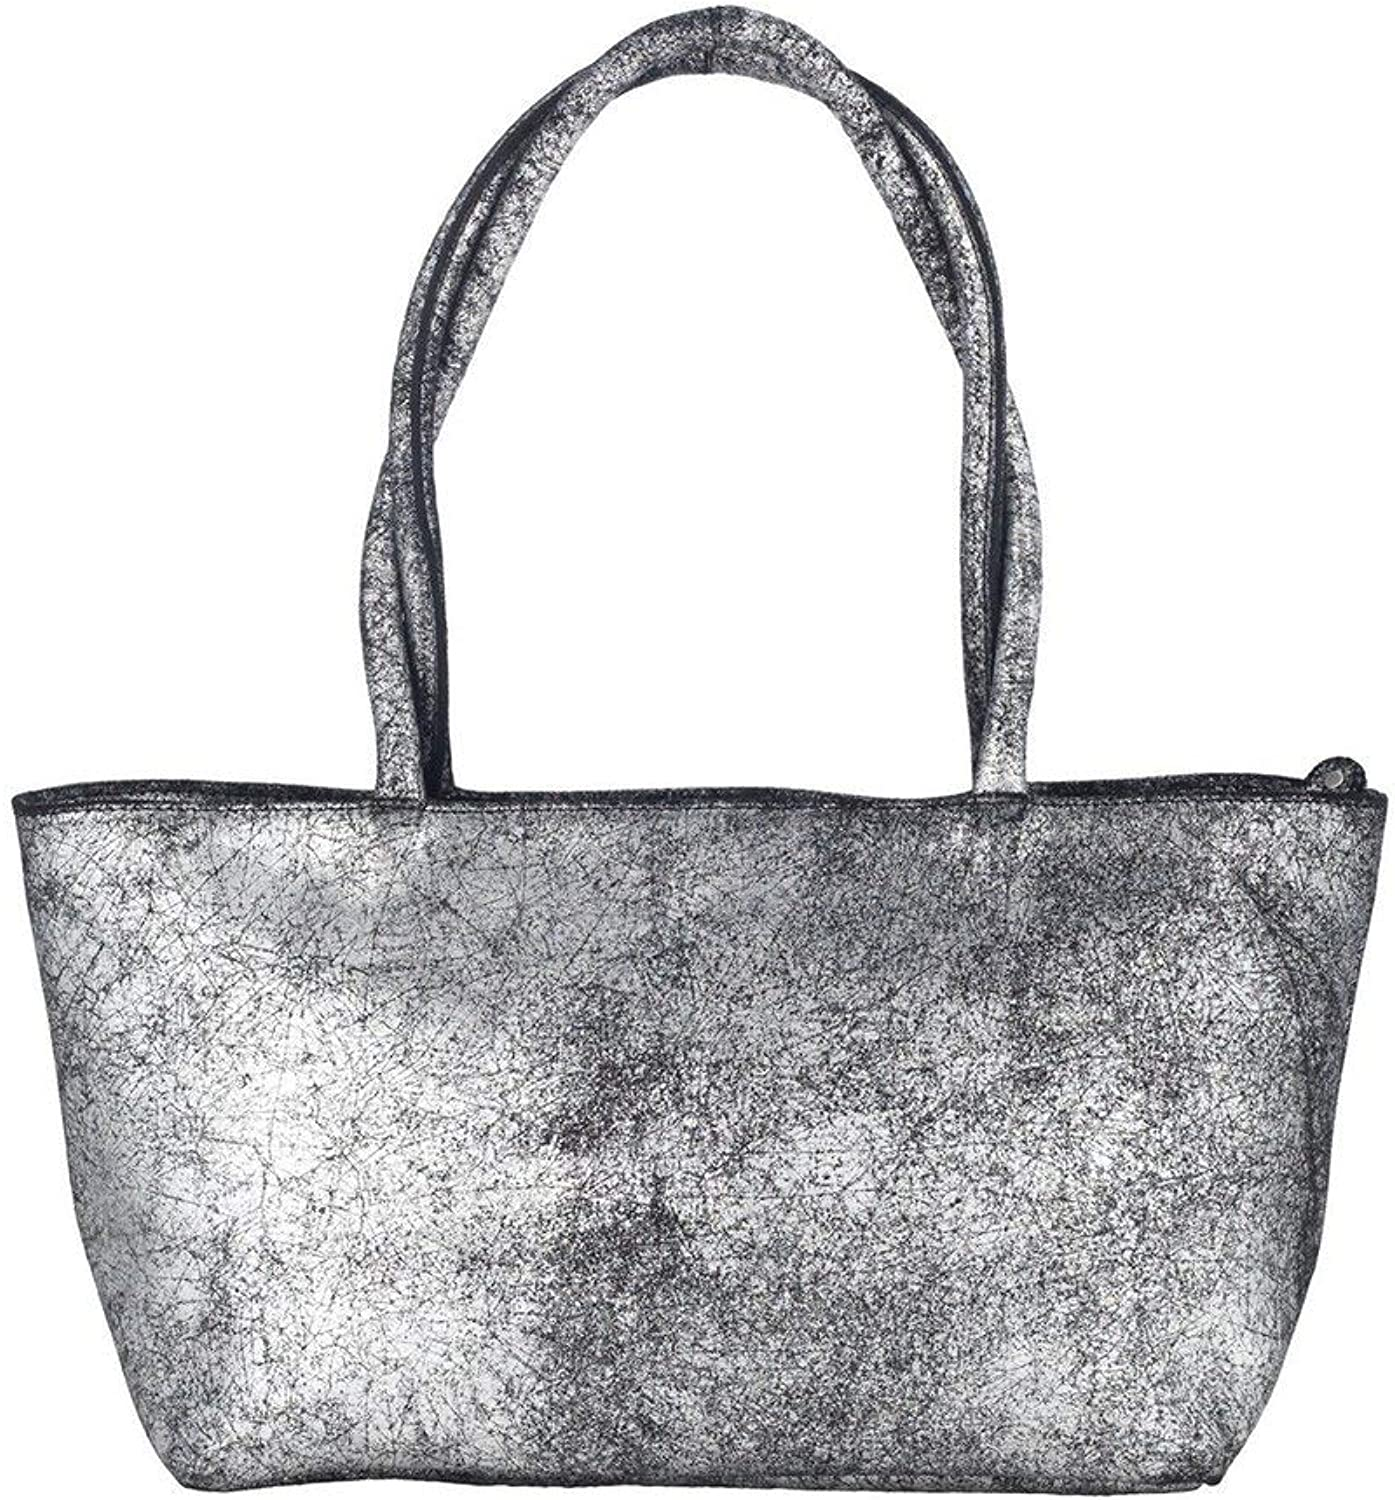 Olivia Riegel Distressed Leather Asia Bag, Silver Black